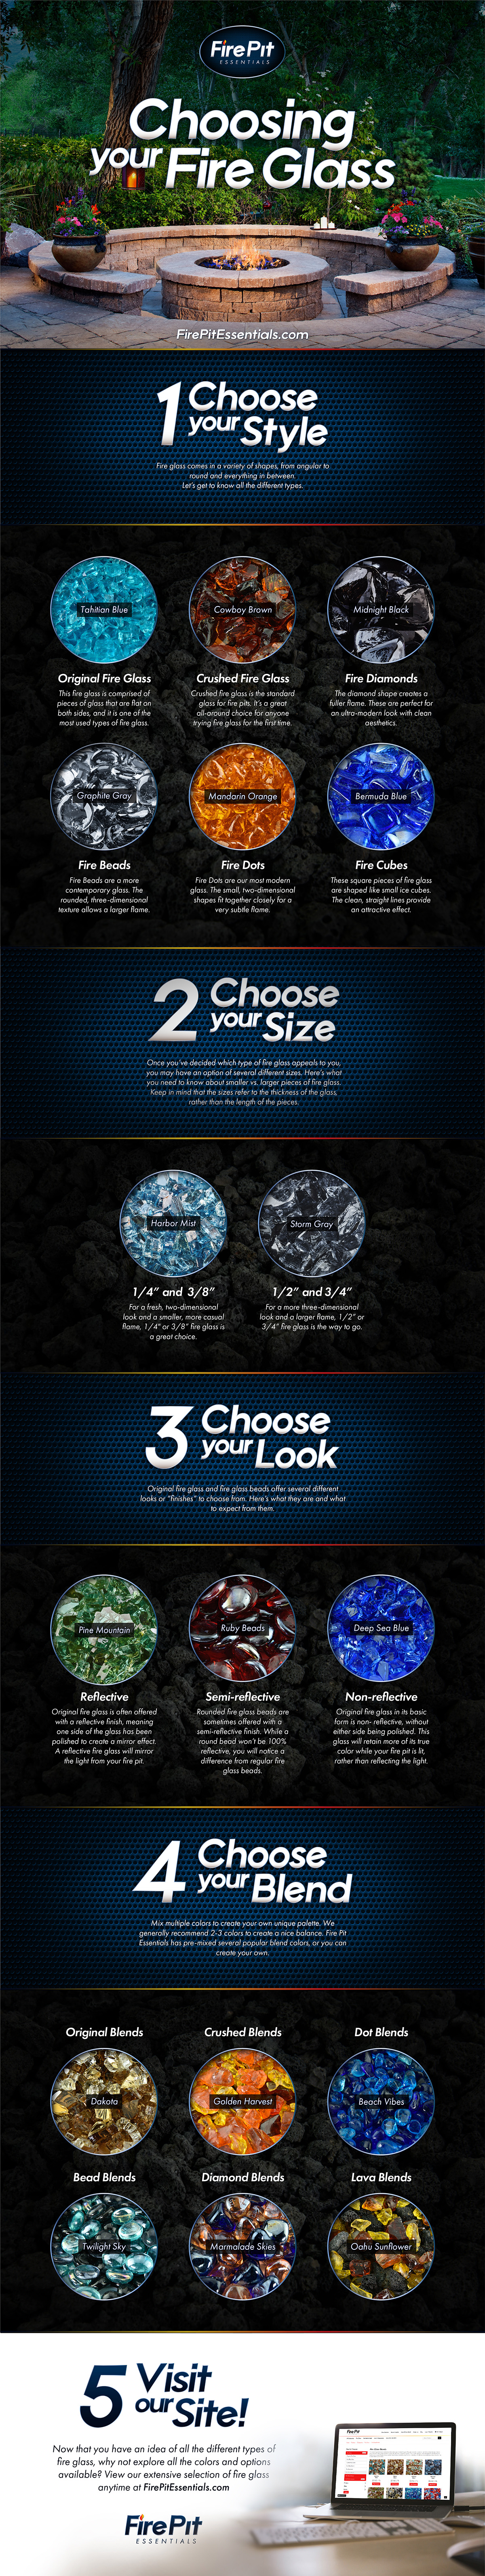 How to Choose Your Fire Glass Infographic